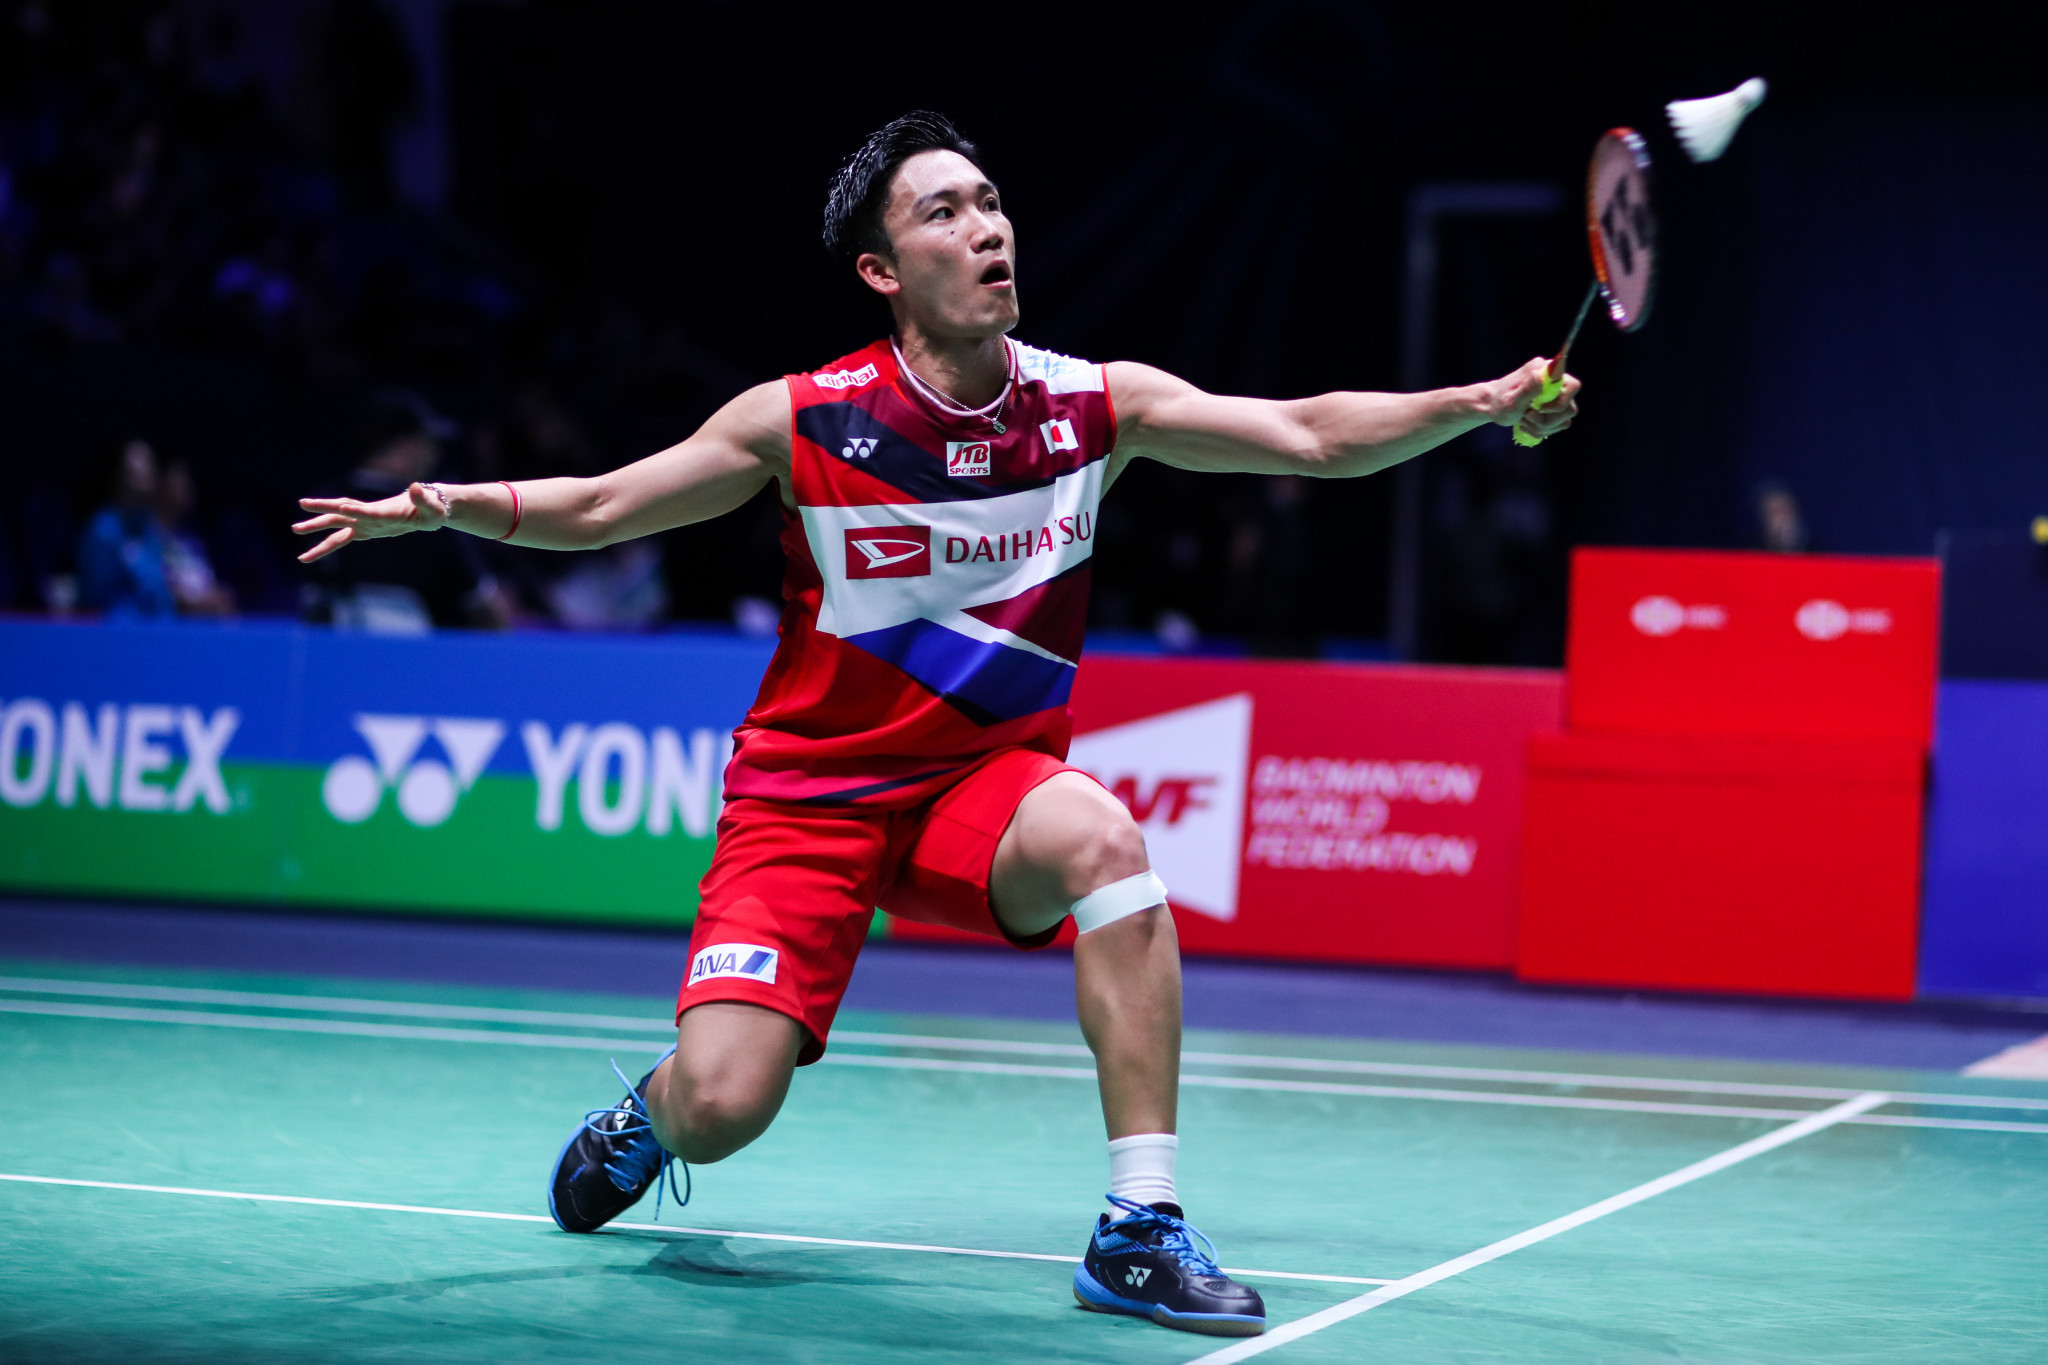 World champion Momota tests positive for COVID-19 as Japan withdraws from tournaments in Thailand